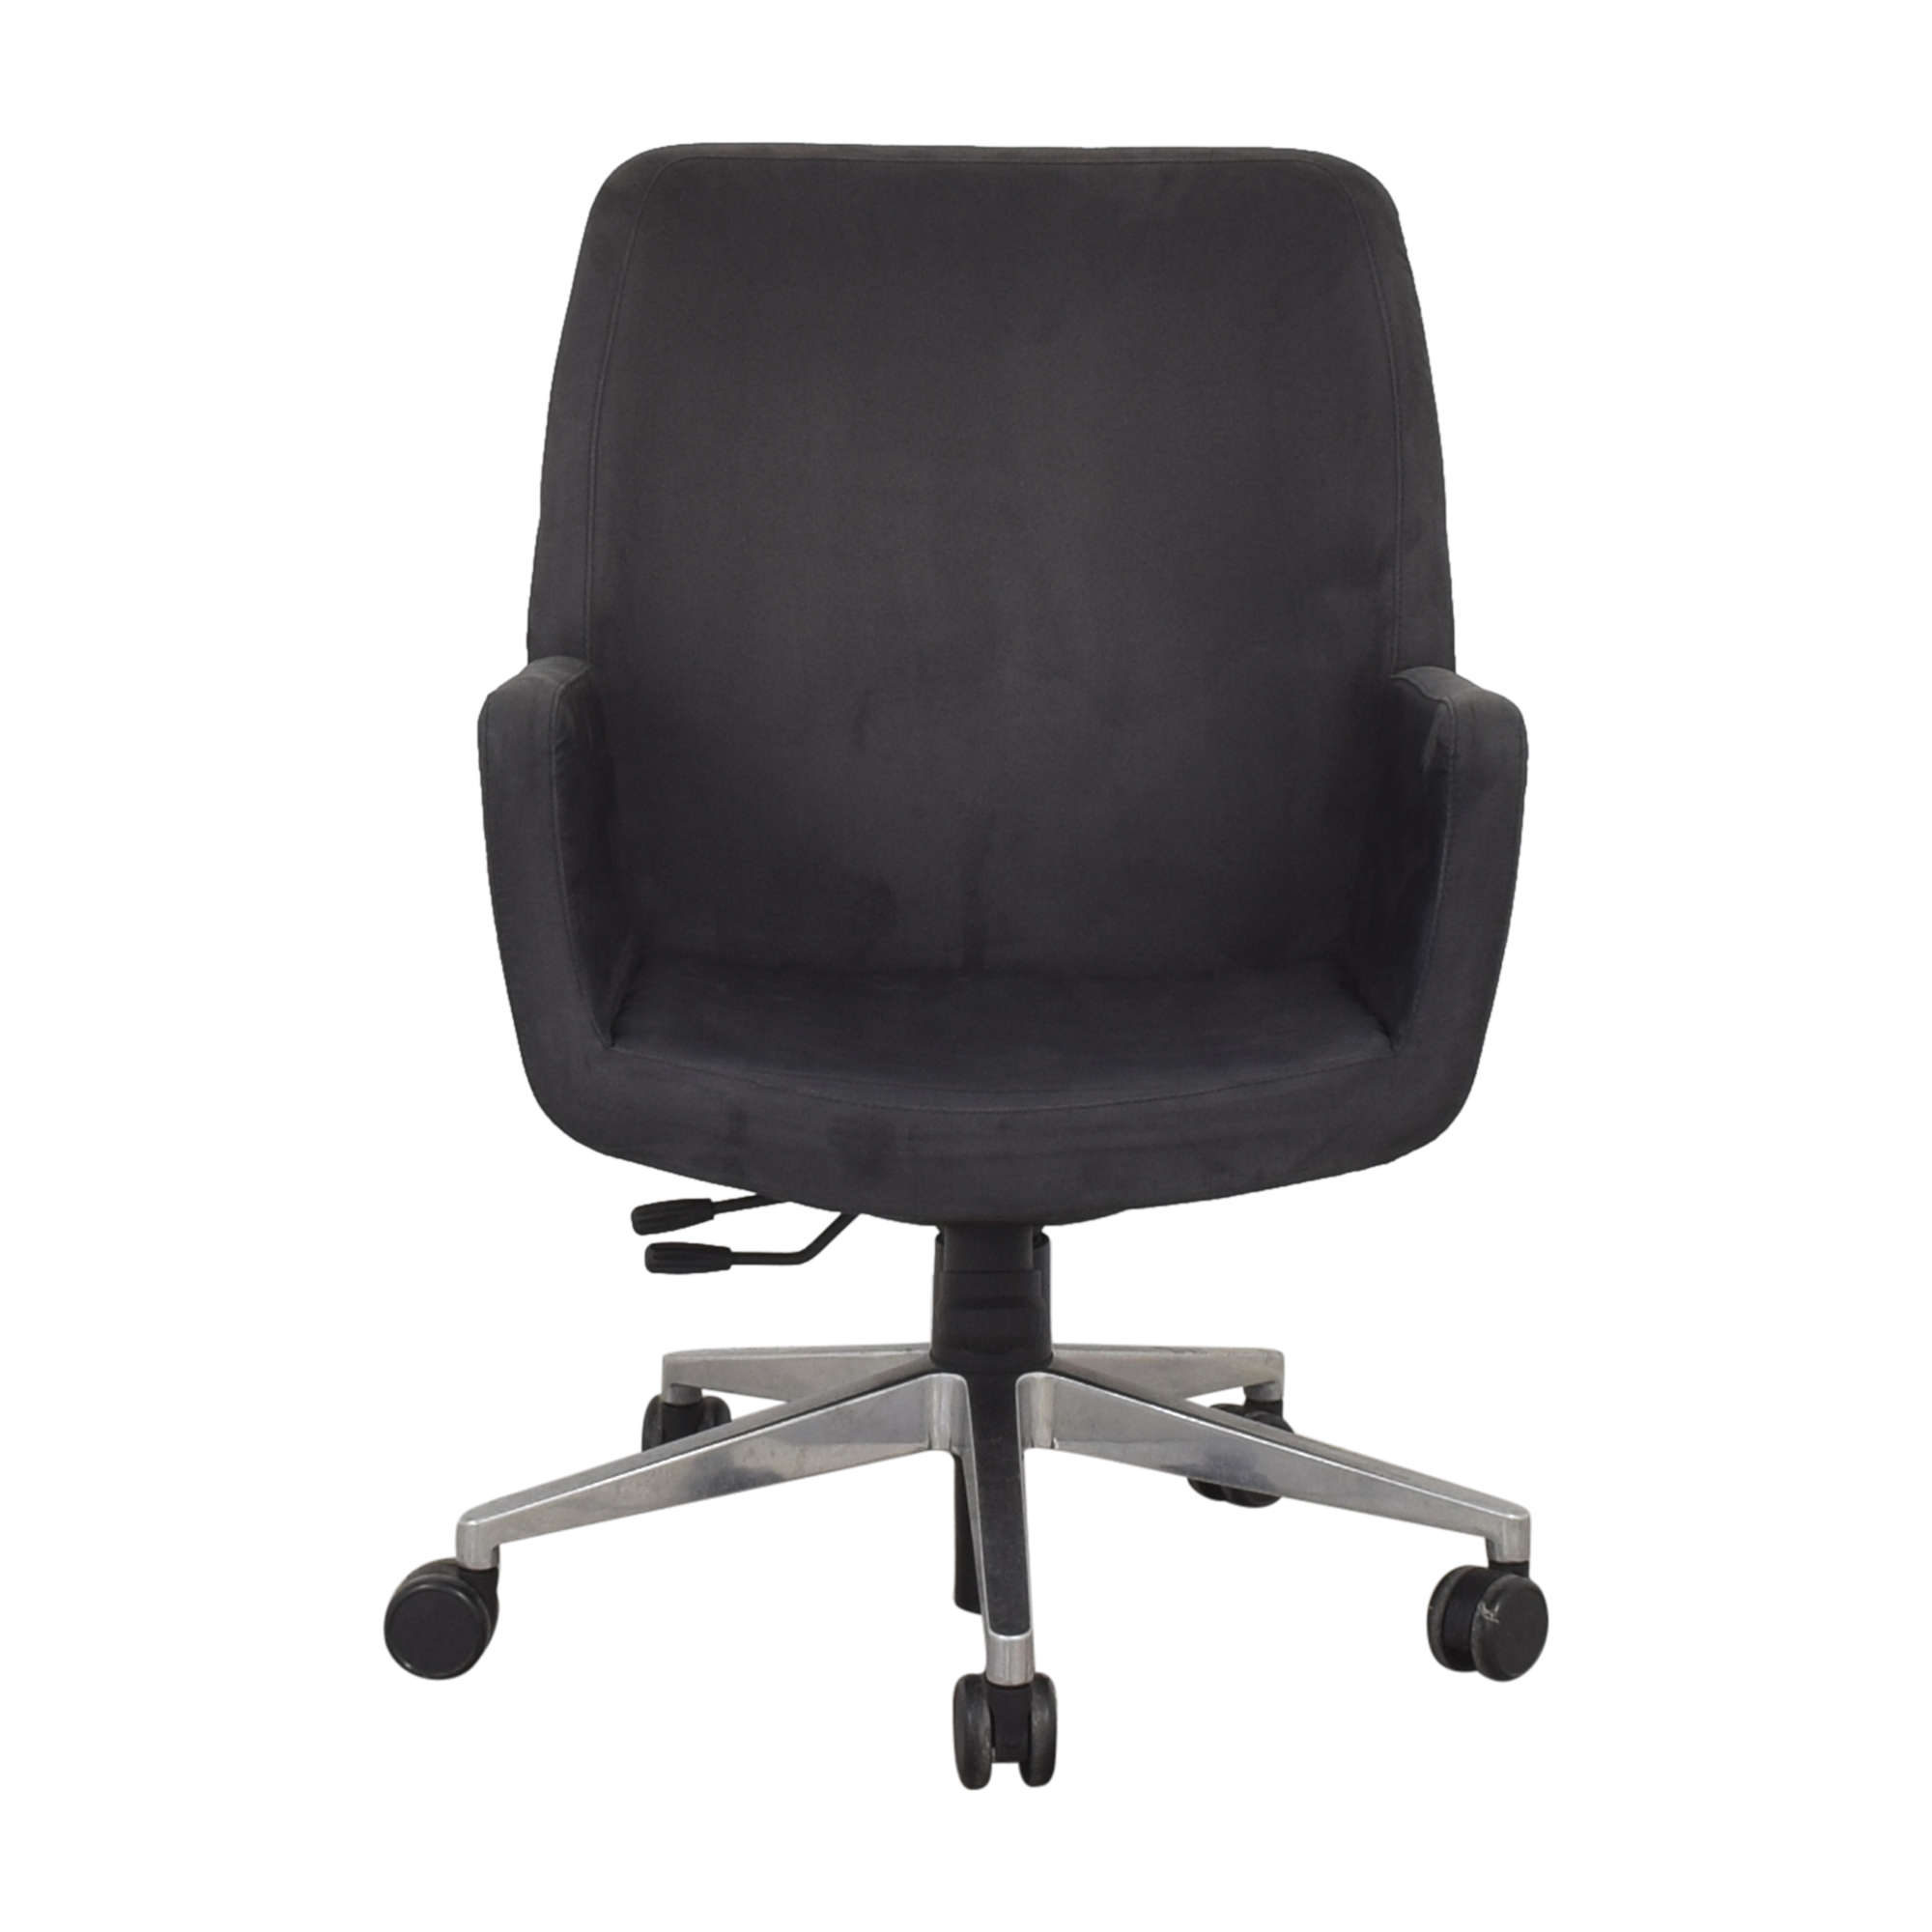 Steelcase Steelcase Coalesse Bindu Guest Chair coupon